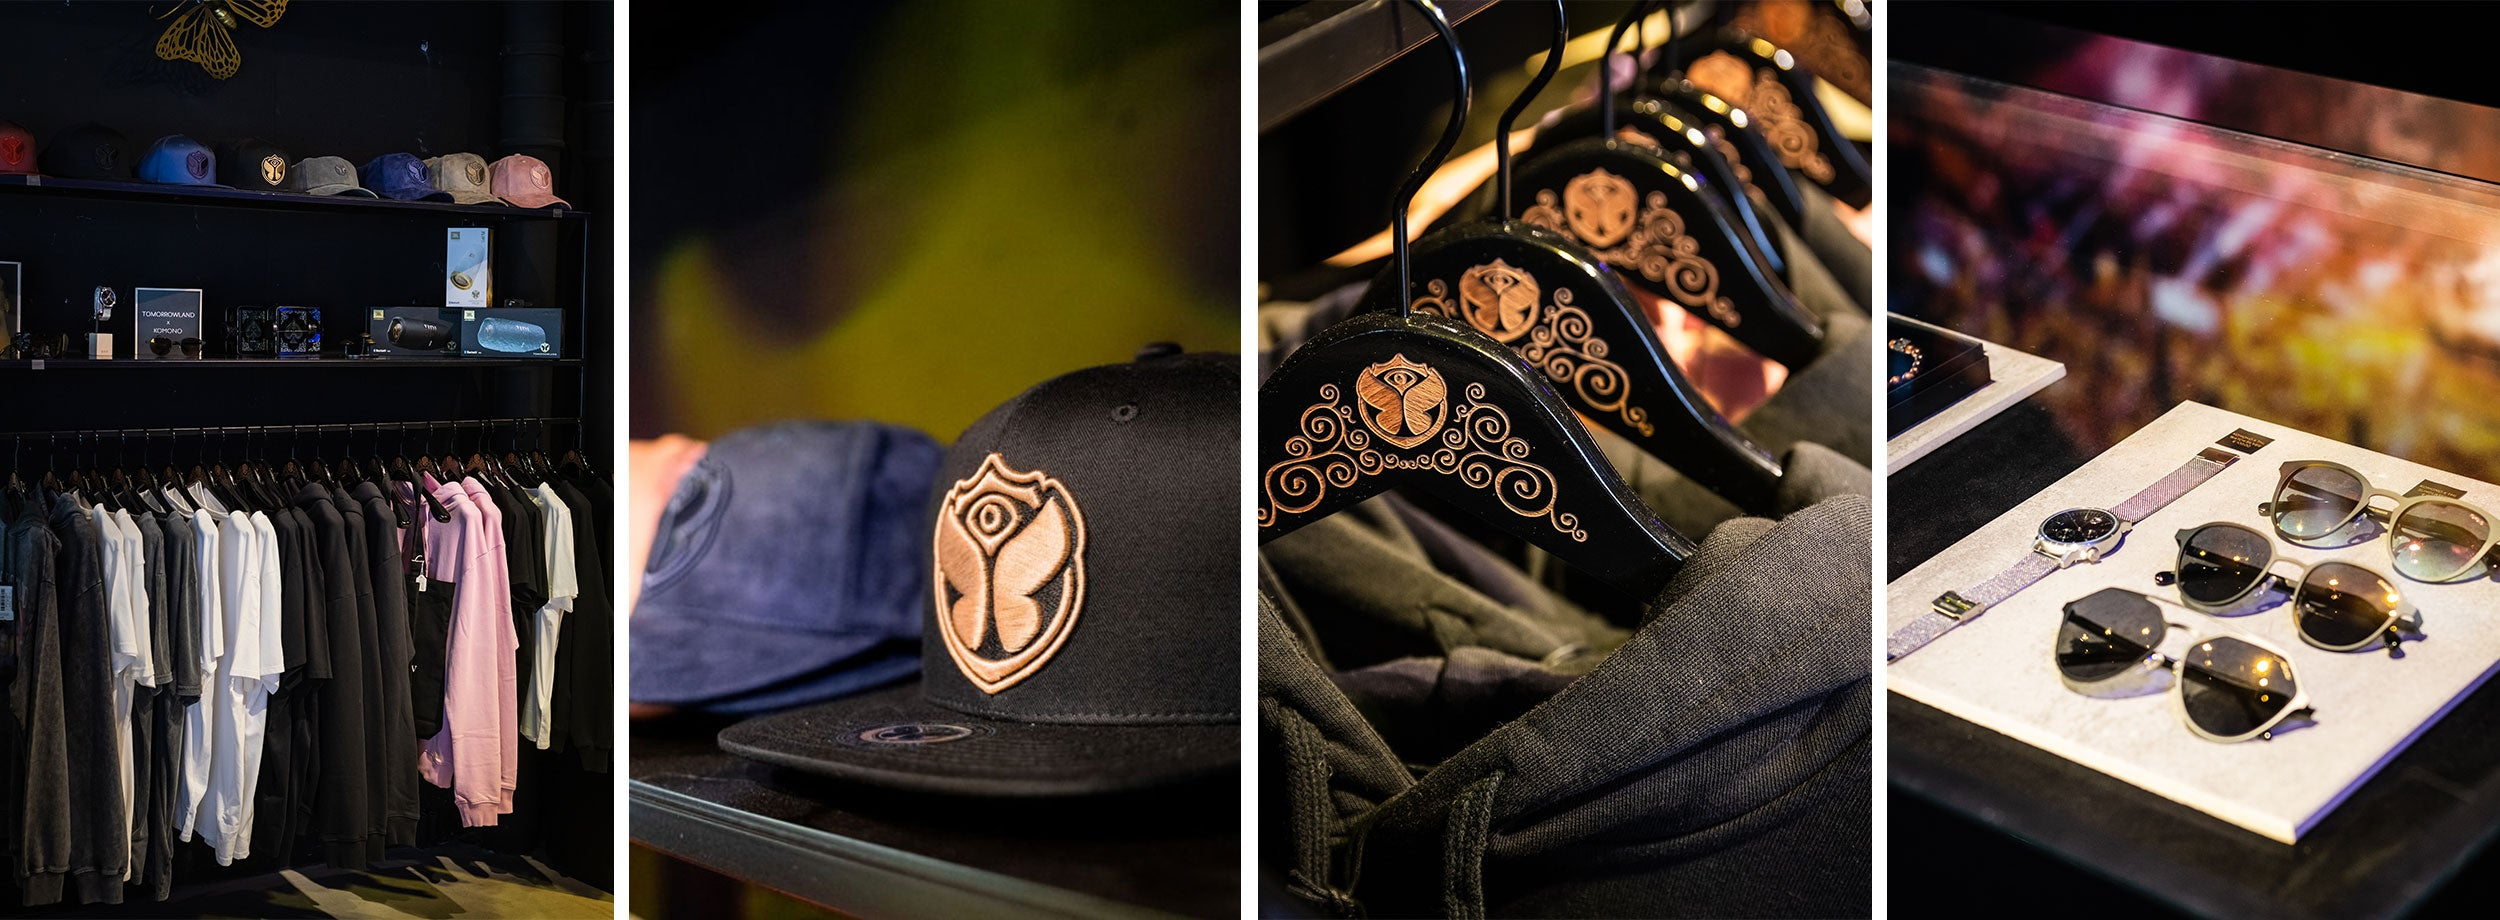 Tomorrowland DJ & Experience Store - Official Tomorrowland Apparel & Accessories